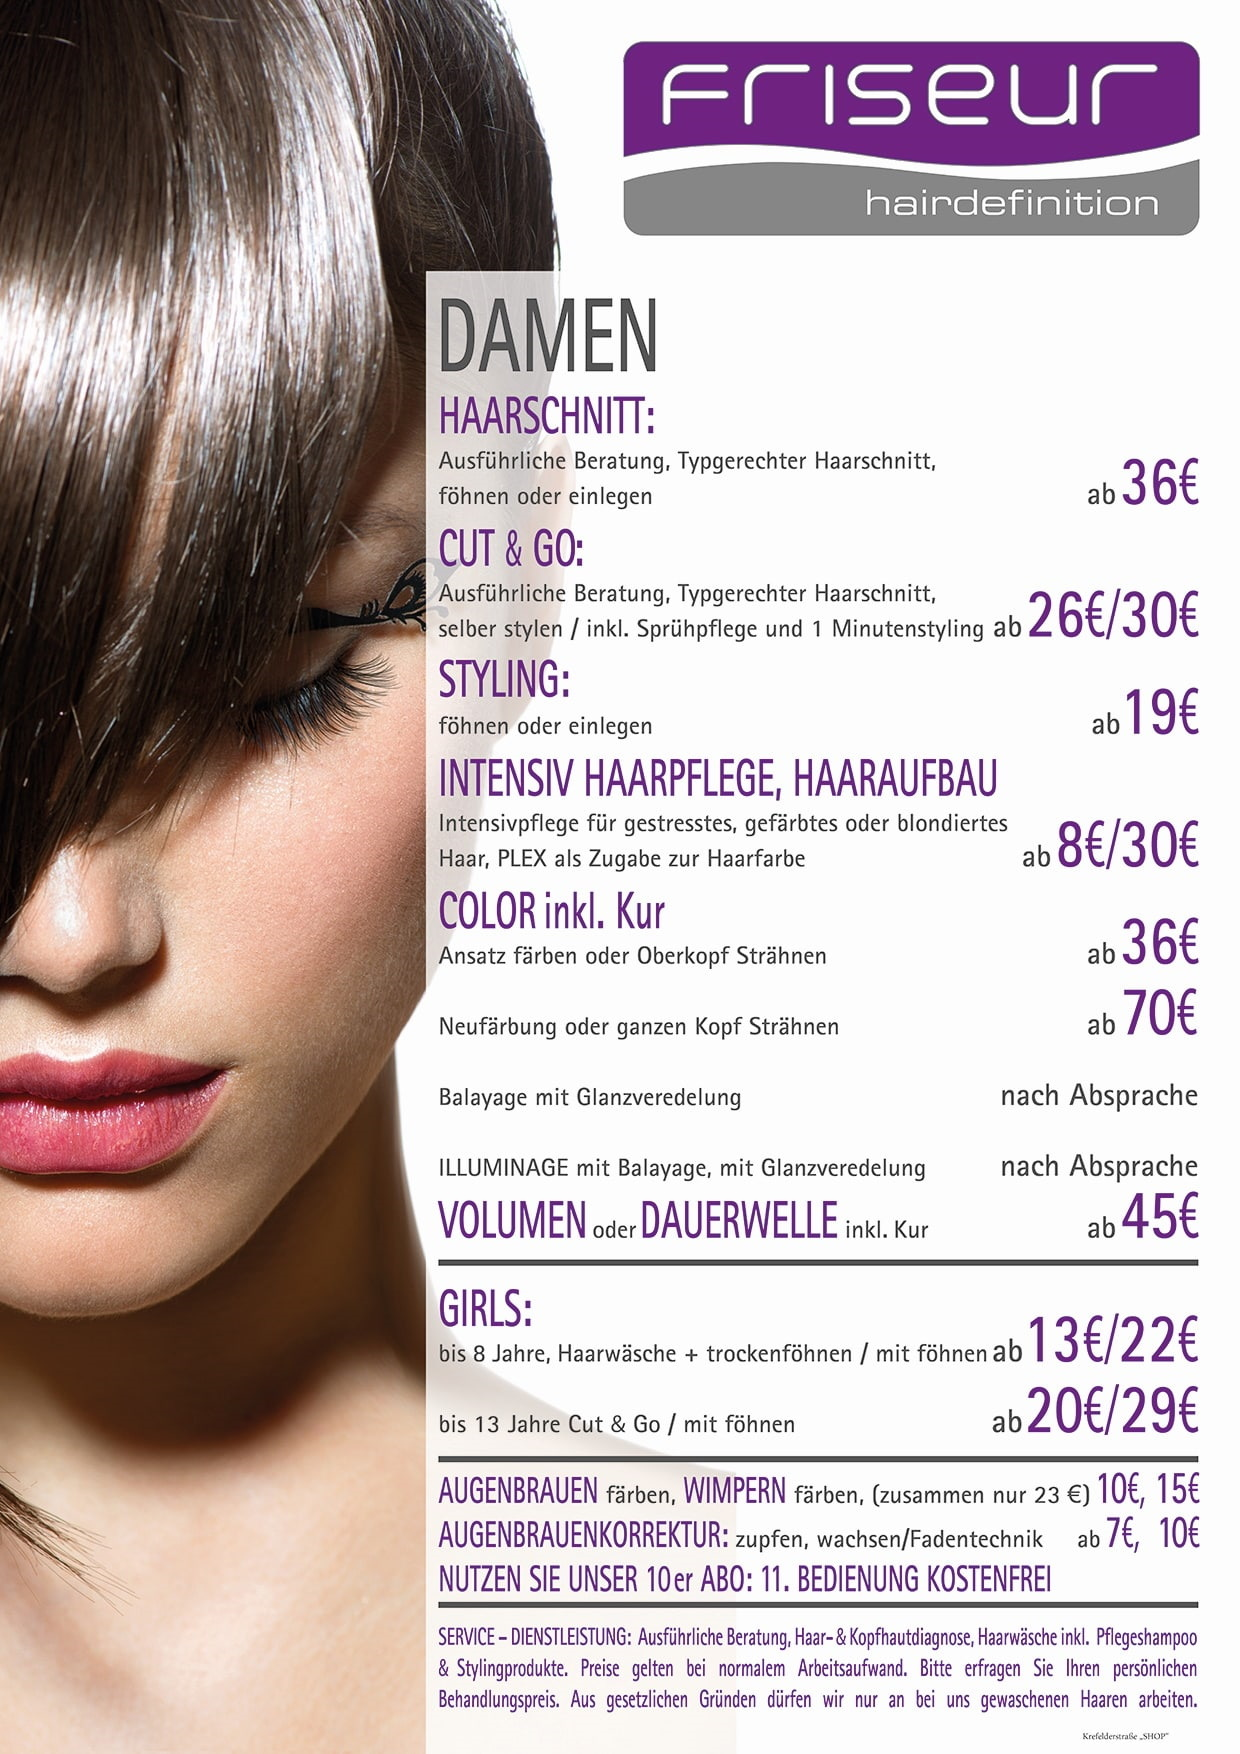 frieseur hairdefinition krefelderstraße shop damen 29.04.2020